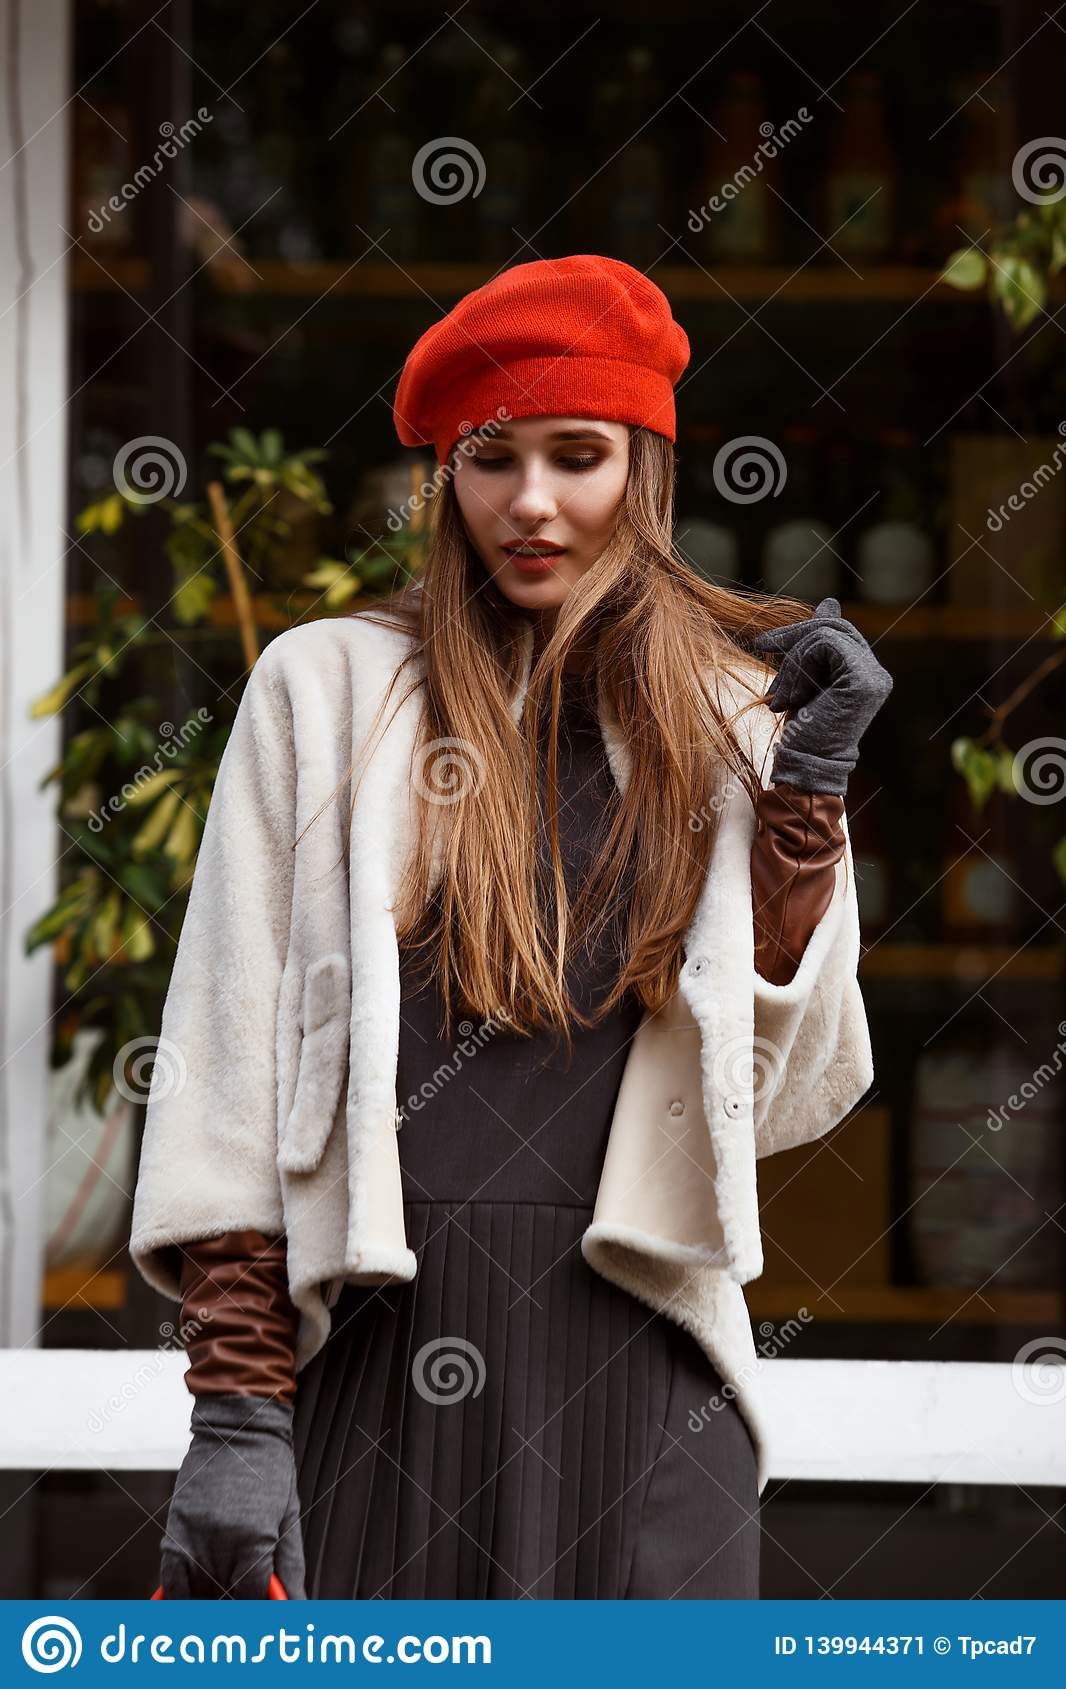 Fashionable girl dressed in stylish gray dress, short sheepskin coat, gloves and red beret walks in the park on the